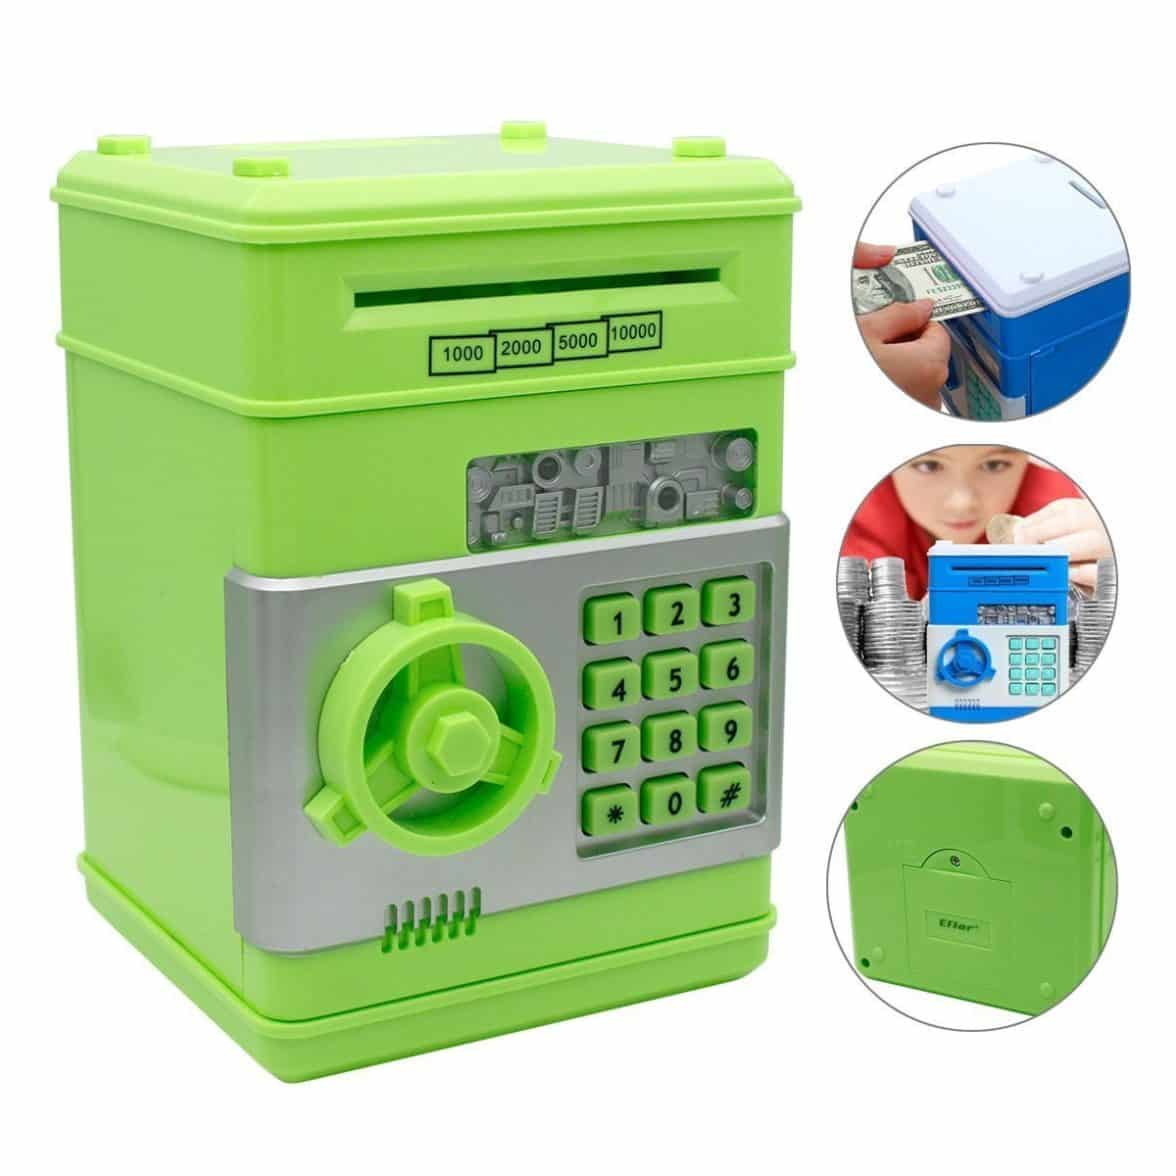 Coin Piggy Bank Toy Shine Toys New Style Electronic Money Saving Box Cash Coin